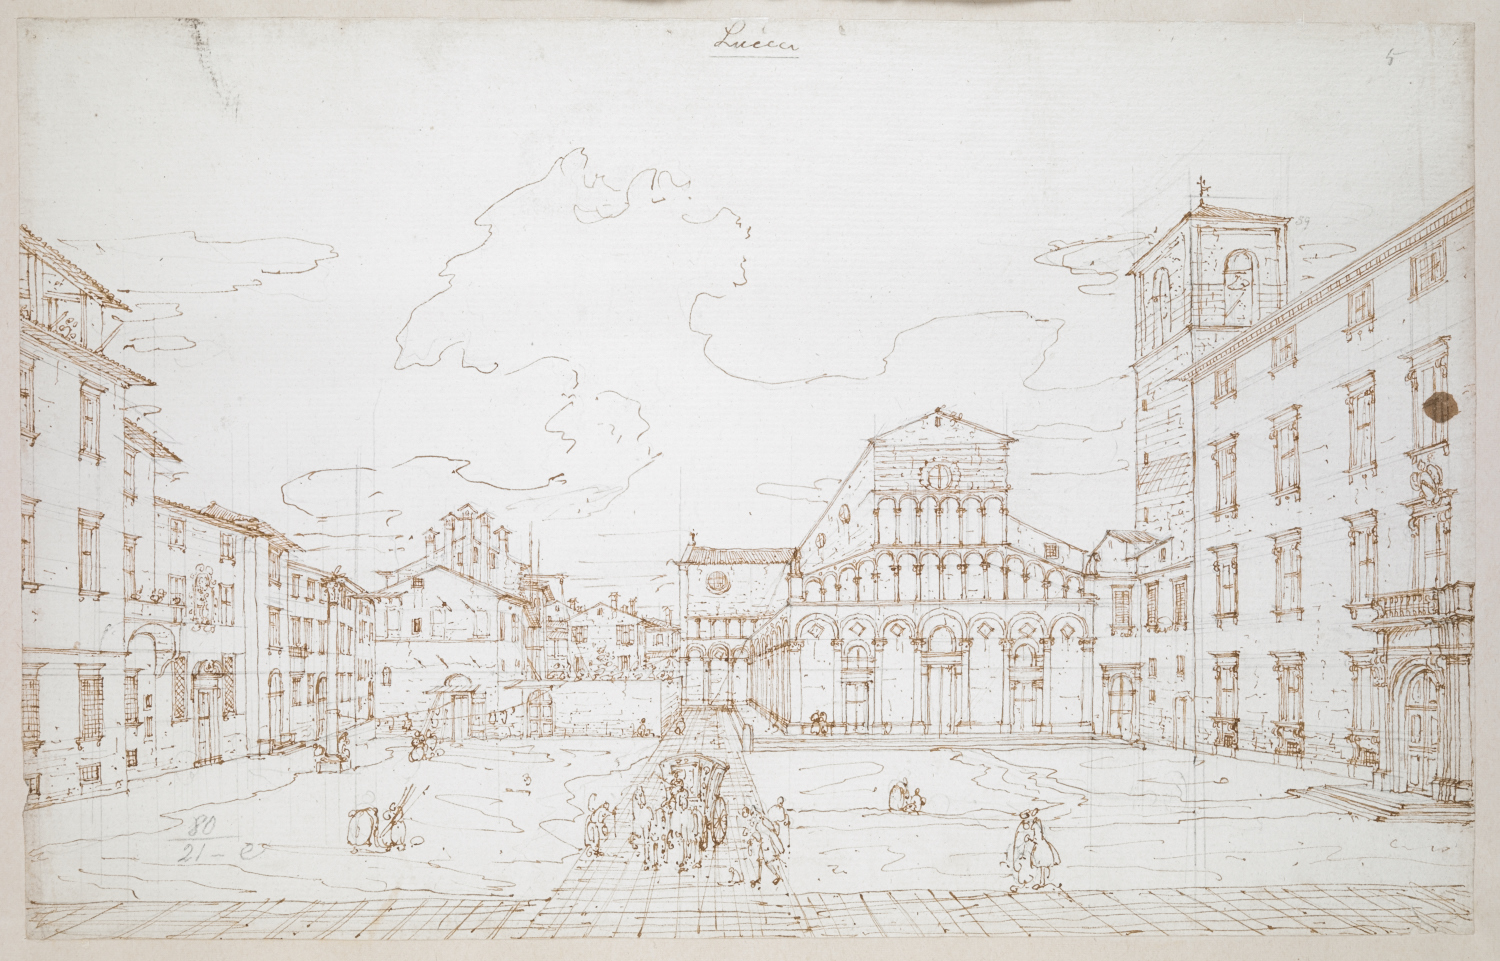 Piazza and Church of Santa Maria Forisportam in Lucca by Bernardo Bellotto. Carriage and figures in the Piazza di Santa Maria Bianca in the foreground, with group of three-storey houses, Colonna Mozza and end of the Via Santa Croce at left, palazzo and campanile at right, and main façade of the Chiesa di Santa Maria Forisportam in the background.